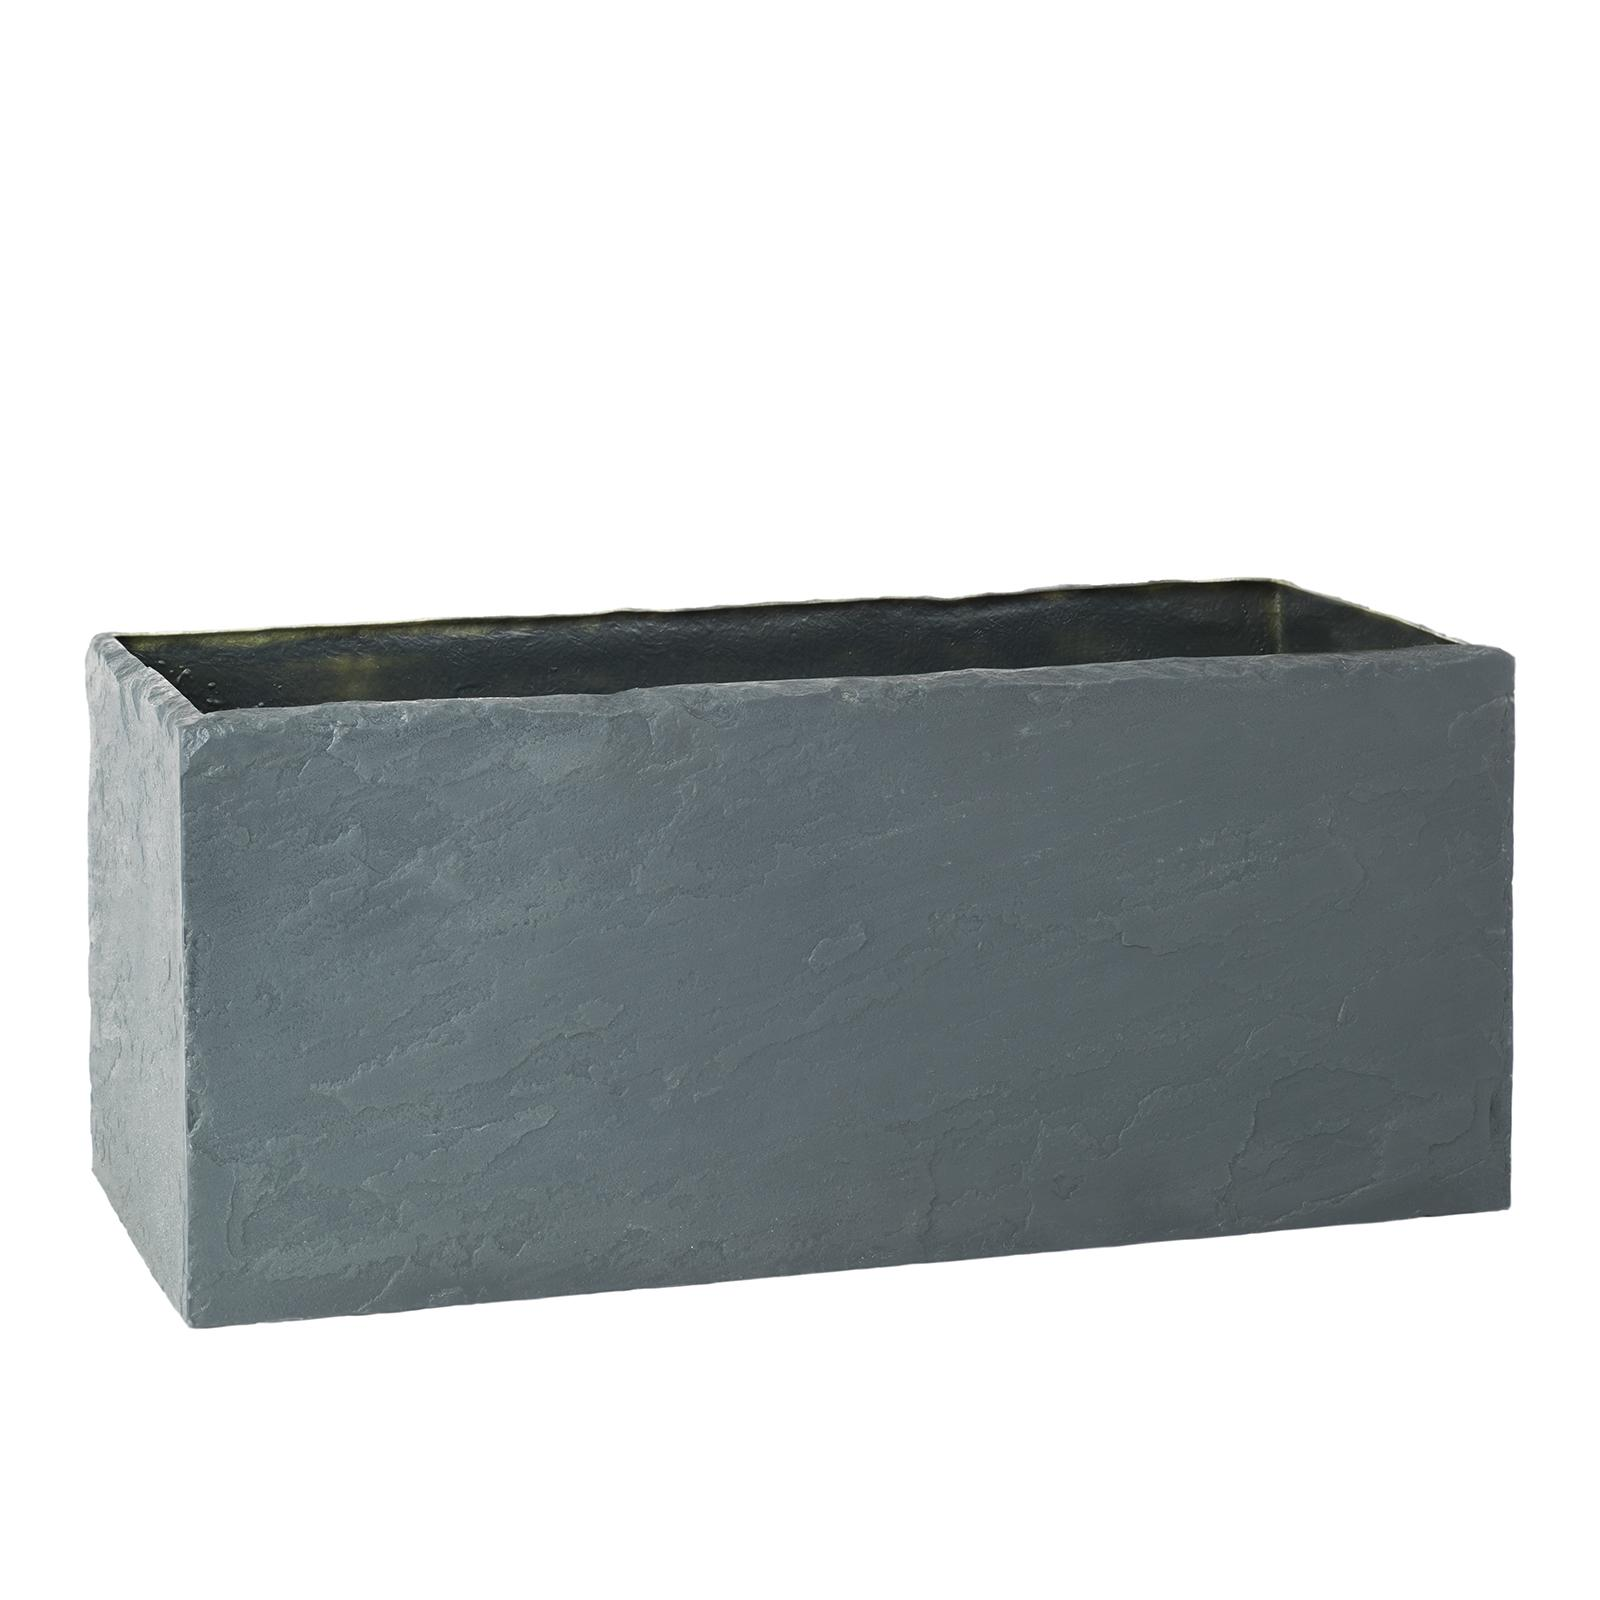 garden_trough_planter_slate_fibreglass_stone_modern